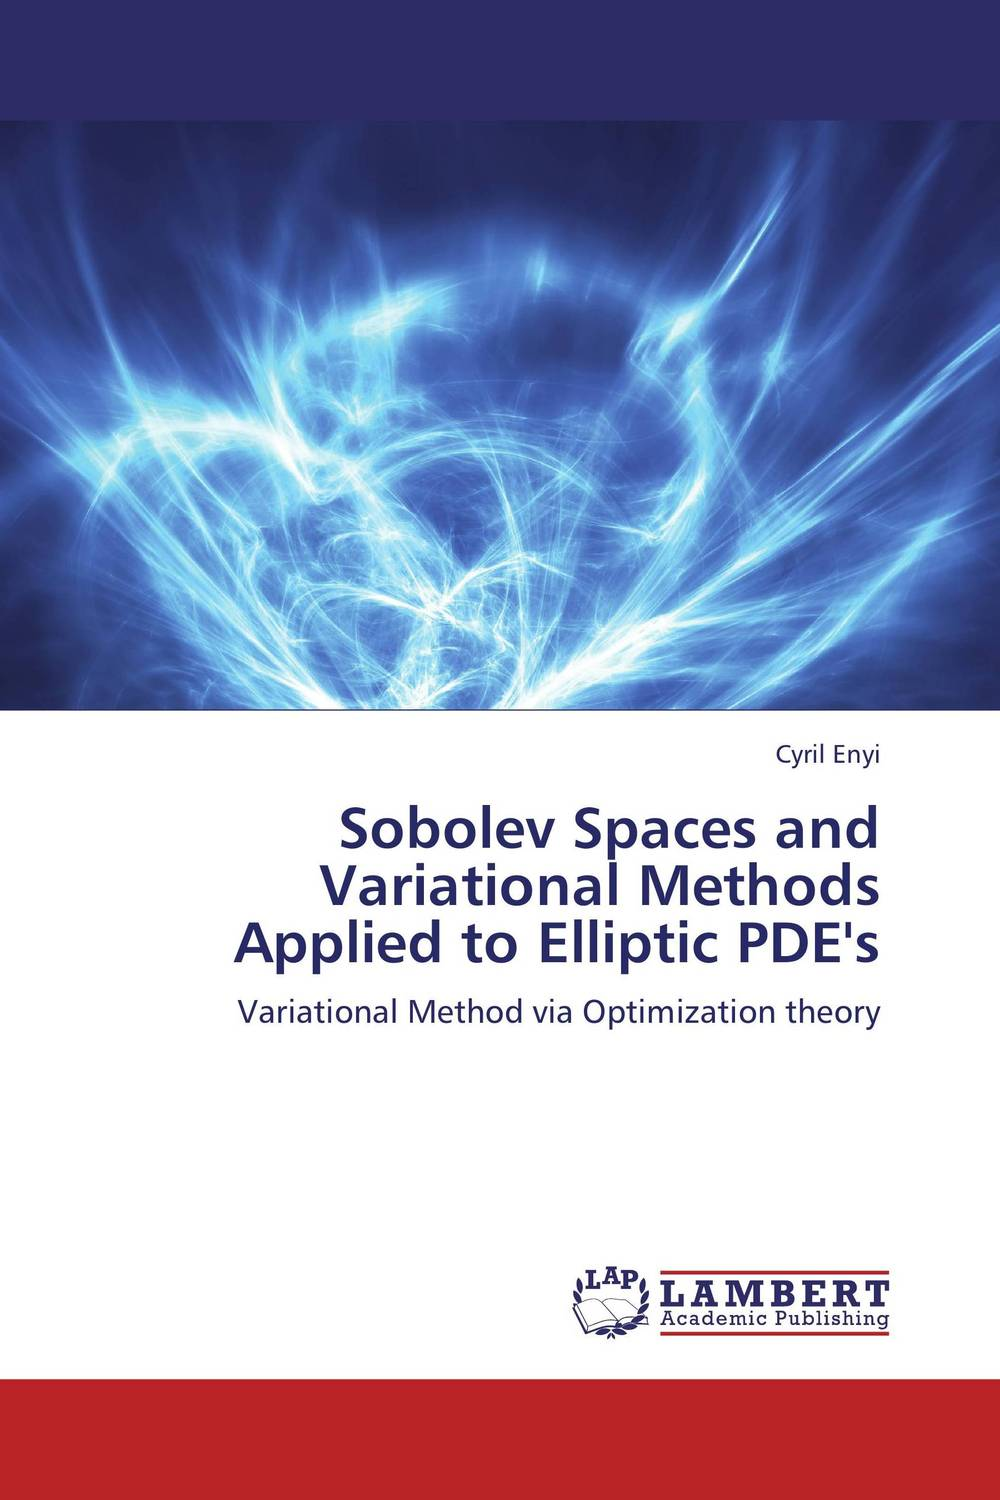 Sobolev Spaces and Variational Methods Applied to Elliptic PDE's variational method